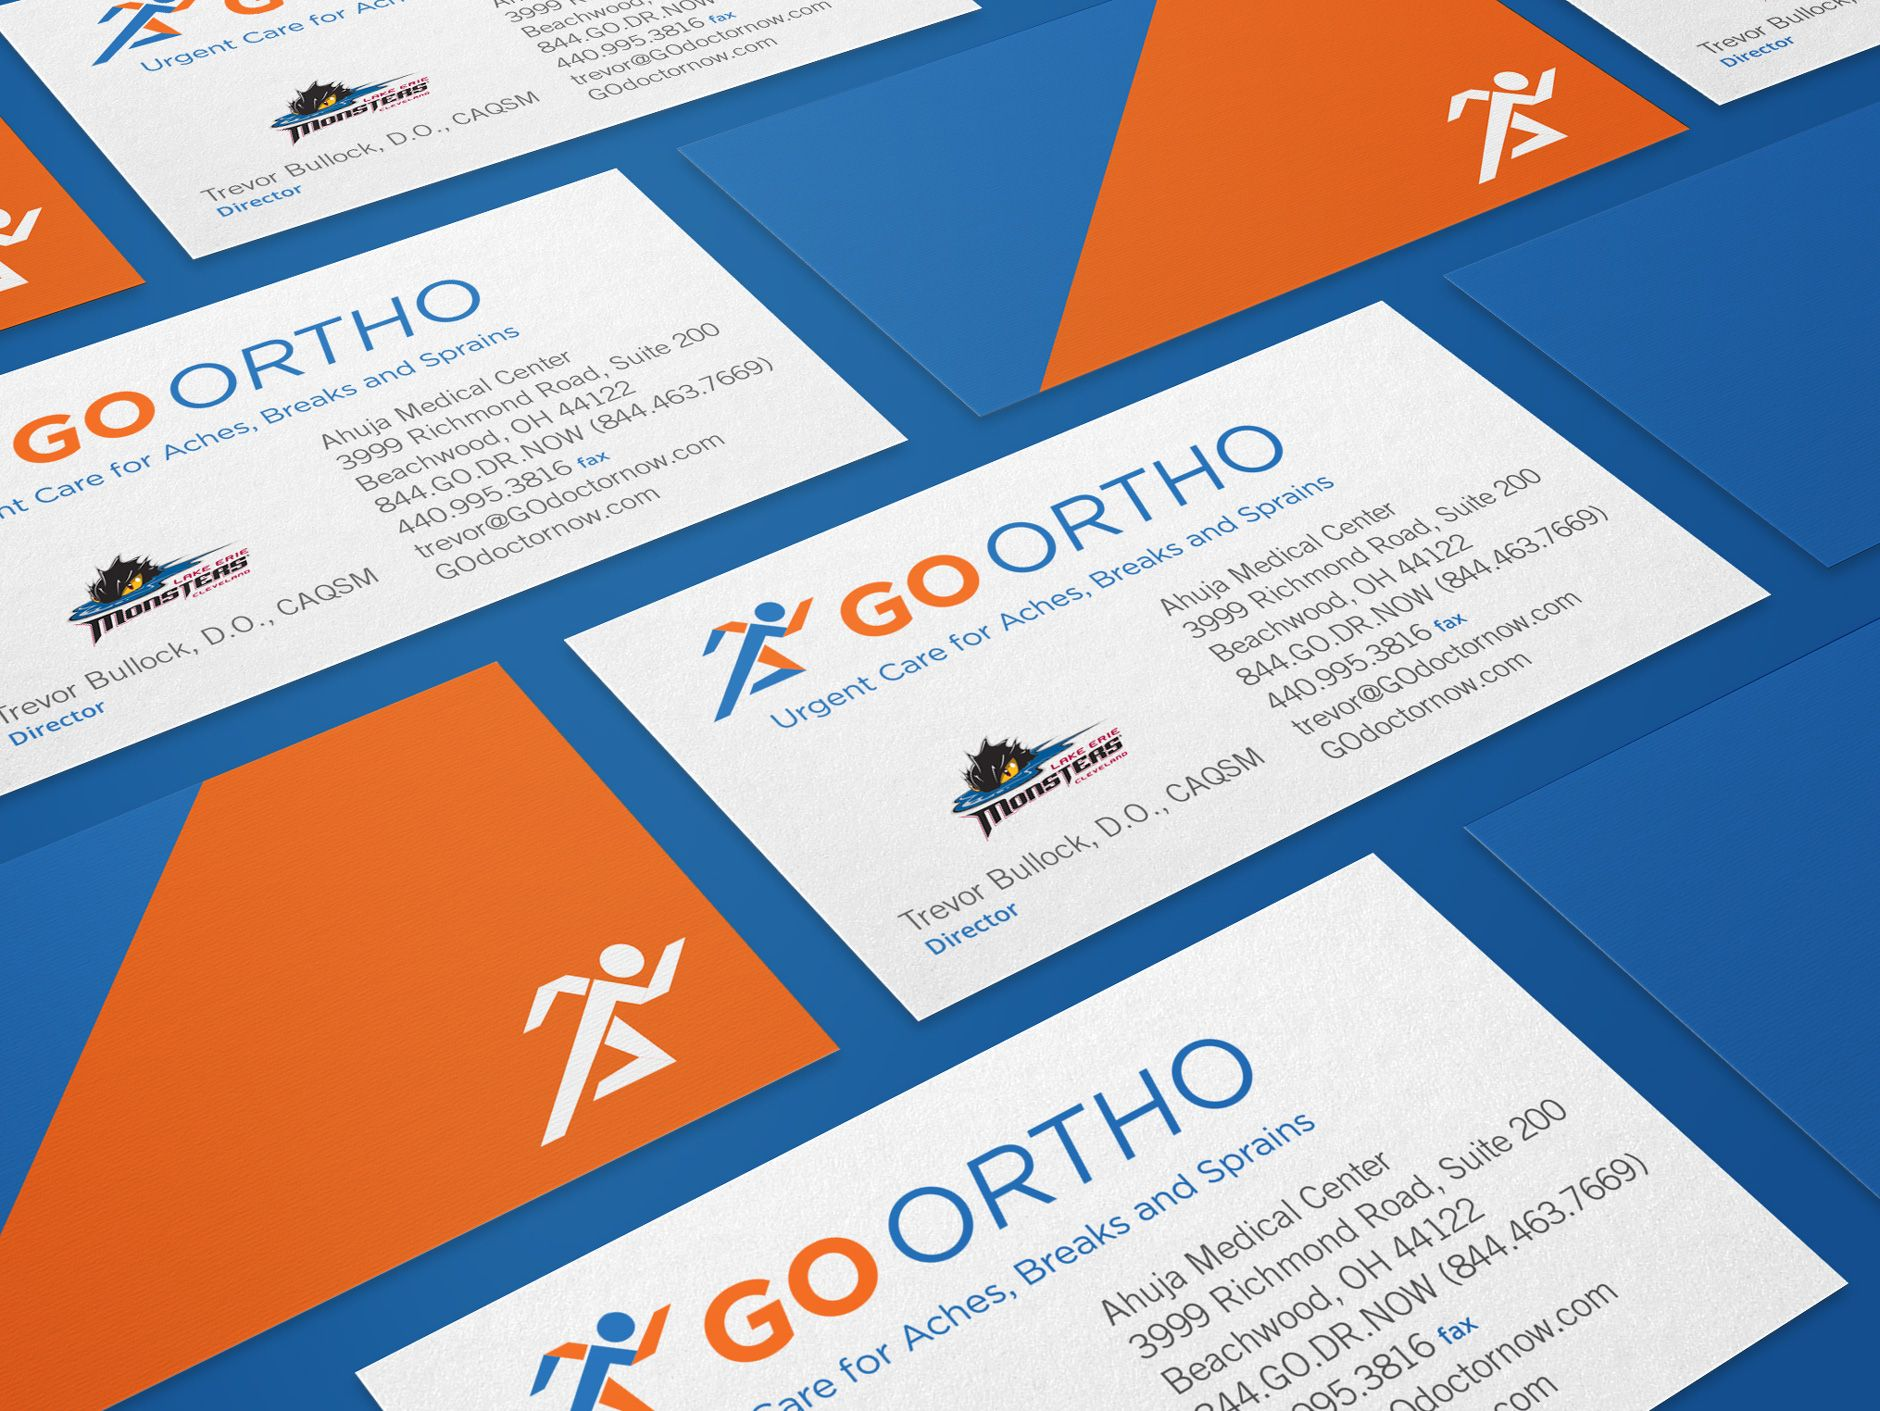 Go ortho cleveland orthopedic specialists business card design go ortho cleveland orthopedic specialists business card design designroom creative reheart Image collections